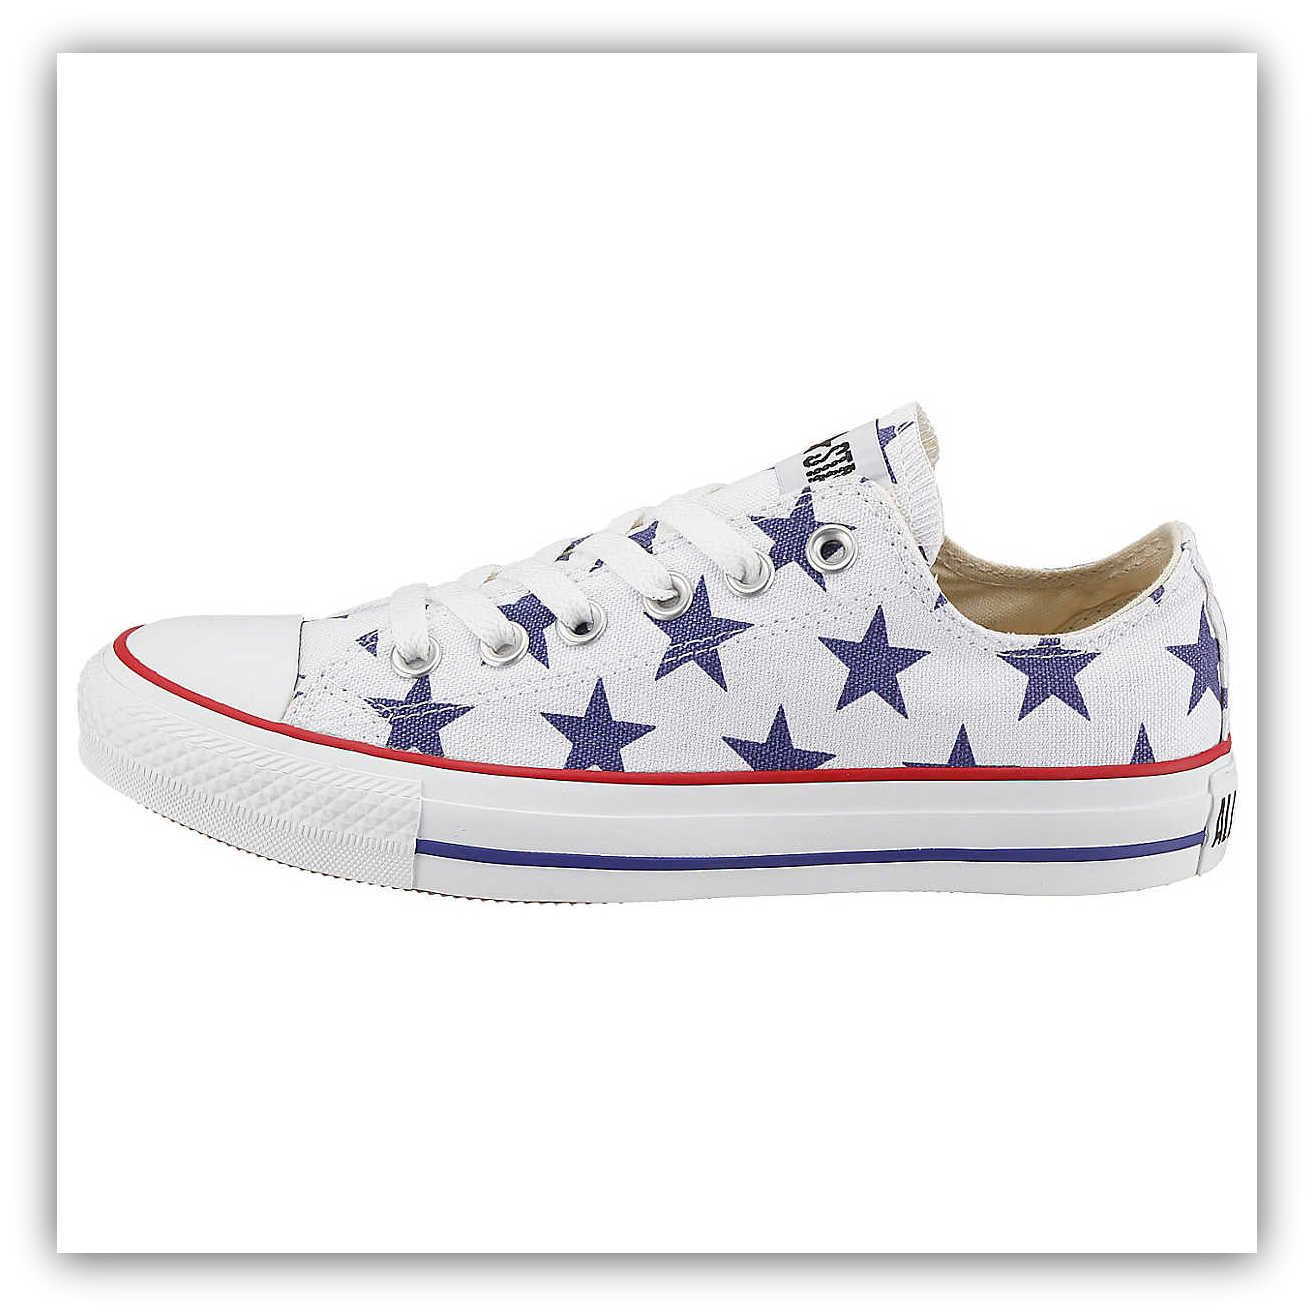 bdbb98eacd37 Converse Chuck Taylor All Star Sneakers   Herbst   Winter ...